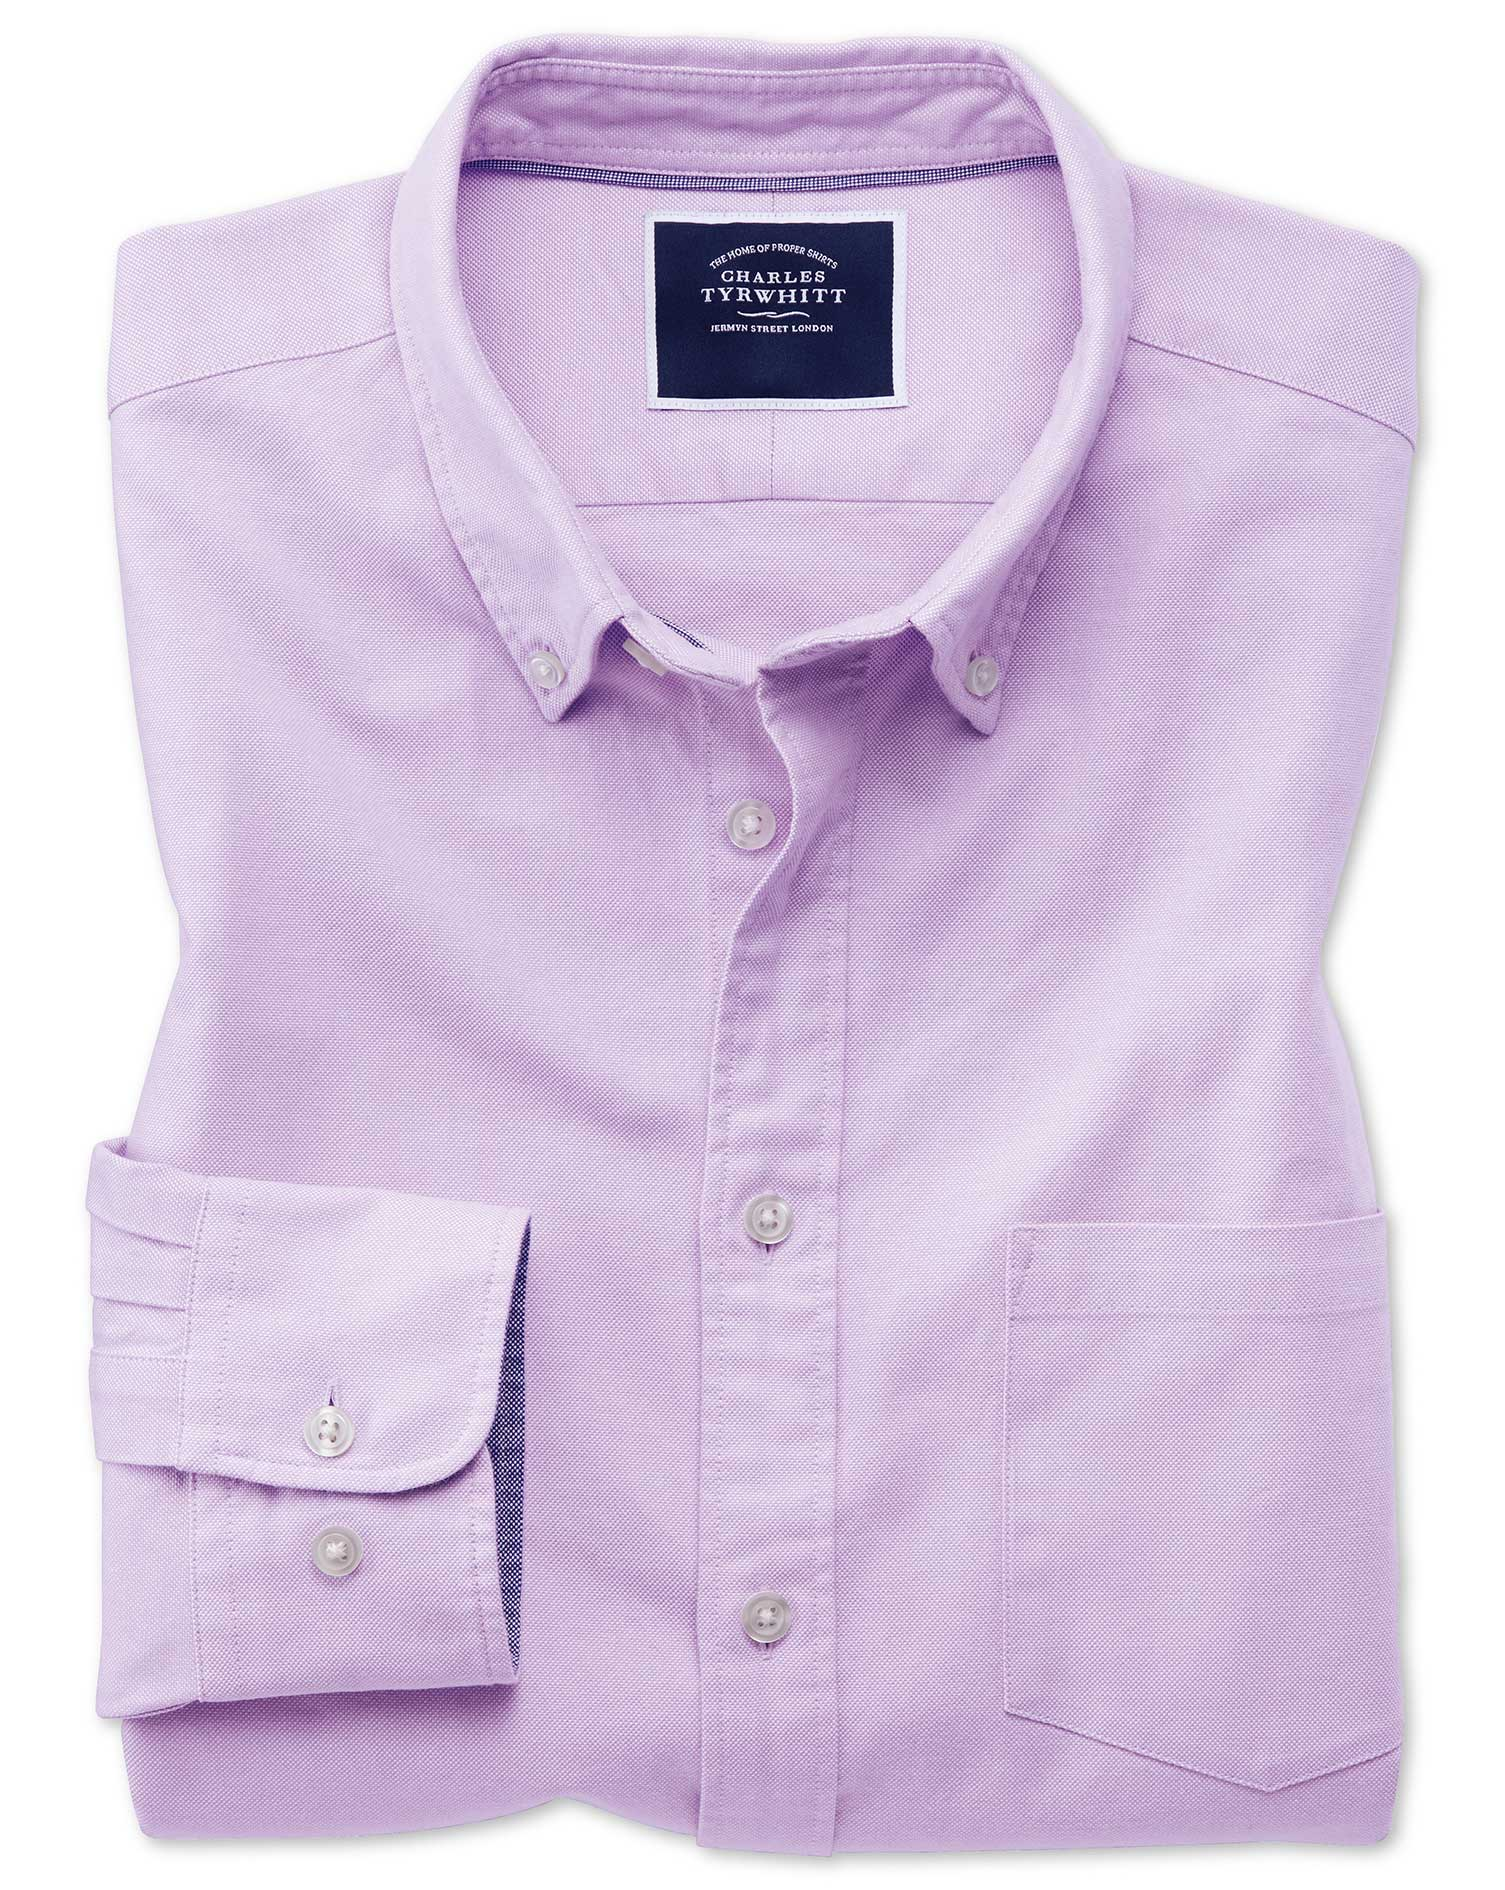 Slim Fit Lilac Plain Button-Down Washed Oxford Cotton Shirt Single Cuff Size Small by Charles Tyrwhi